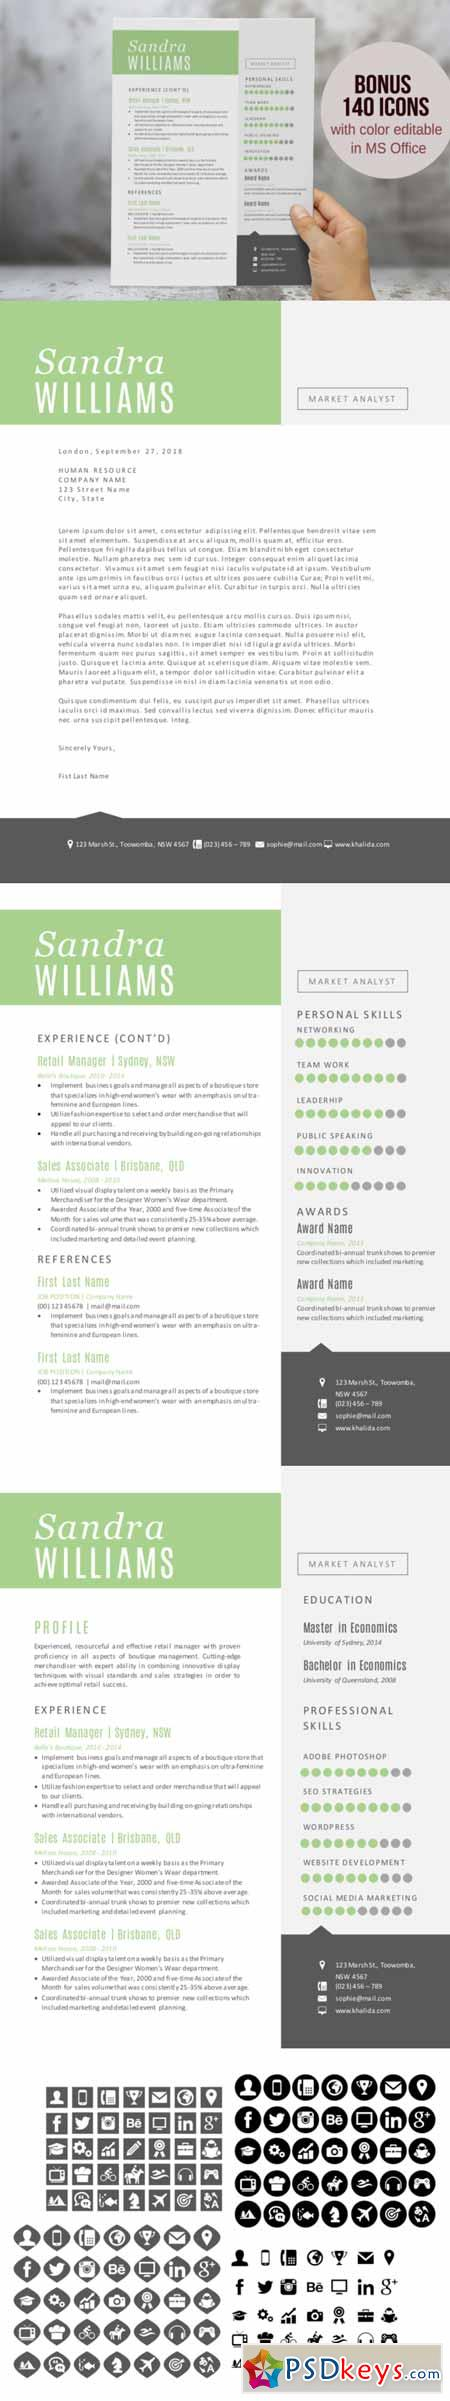 green 2 in 1 word modern resume pack 225561  u00bb free download photoshop vector stock image via